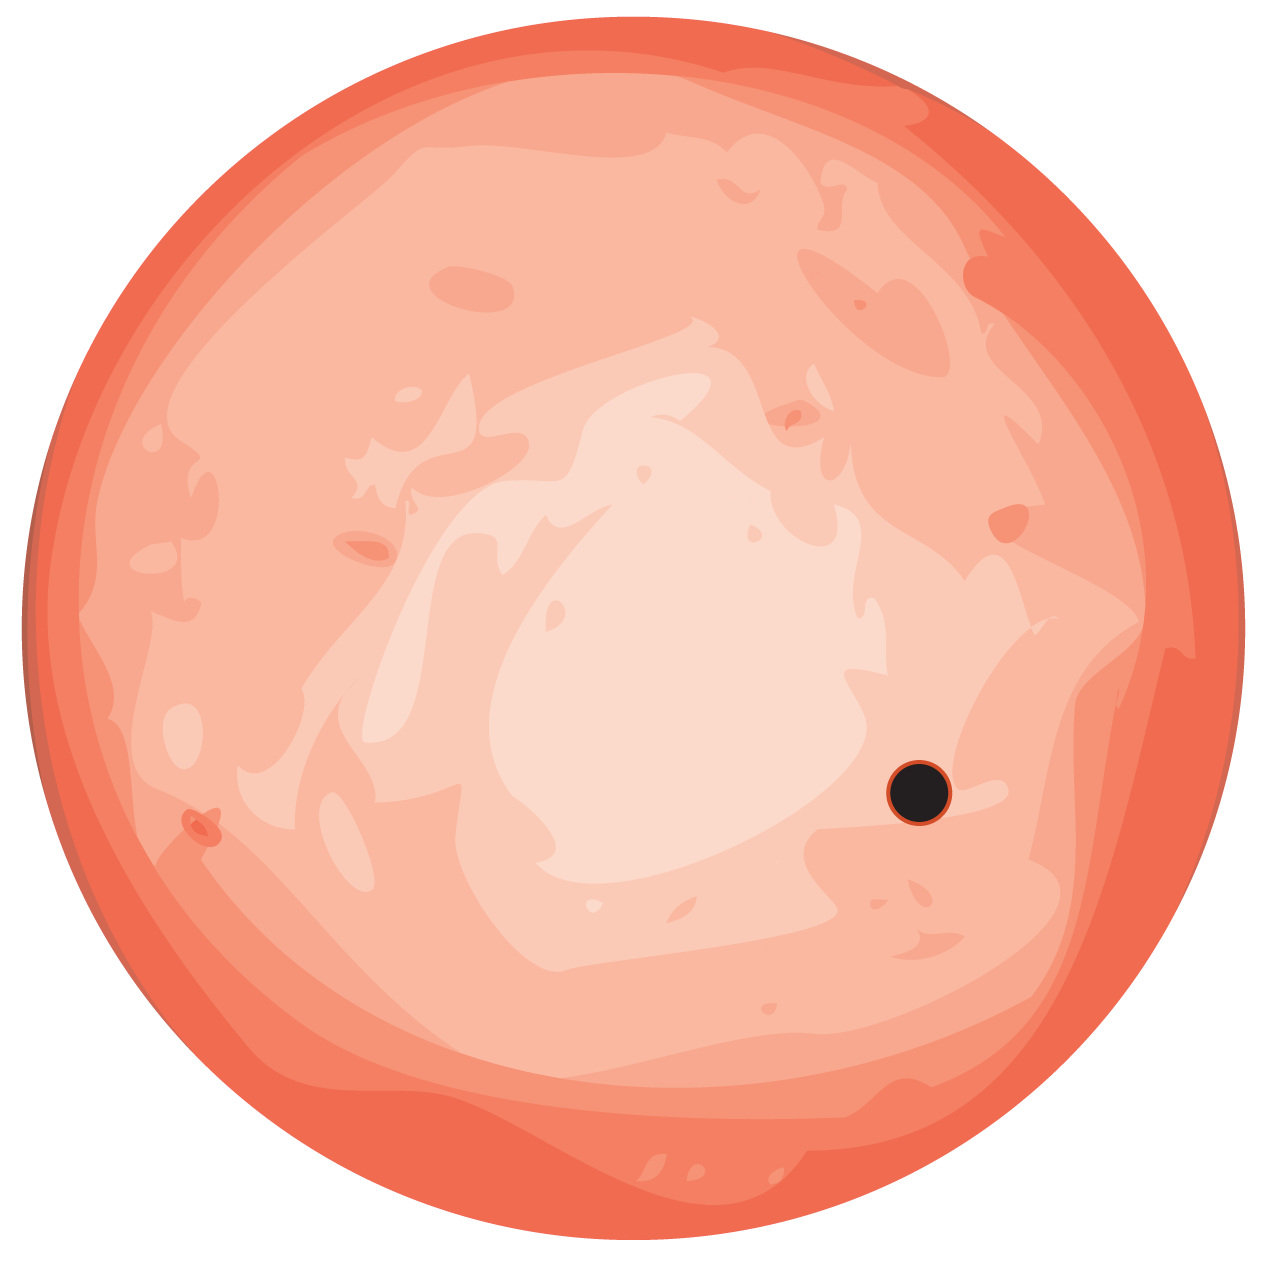 Planet clipart comic. Cartoon images gallery for